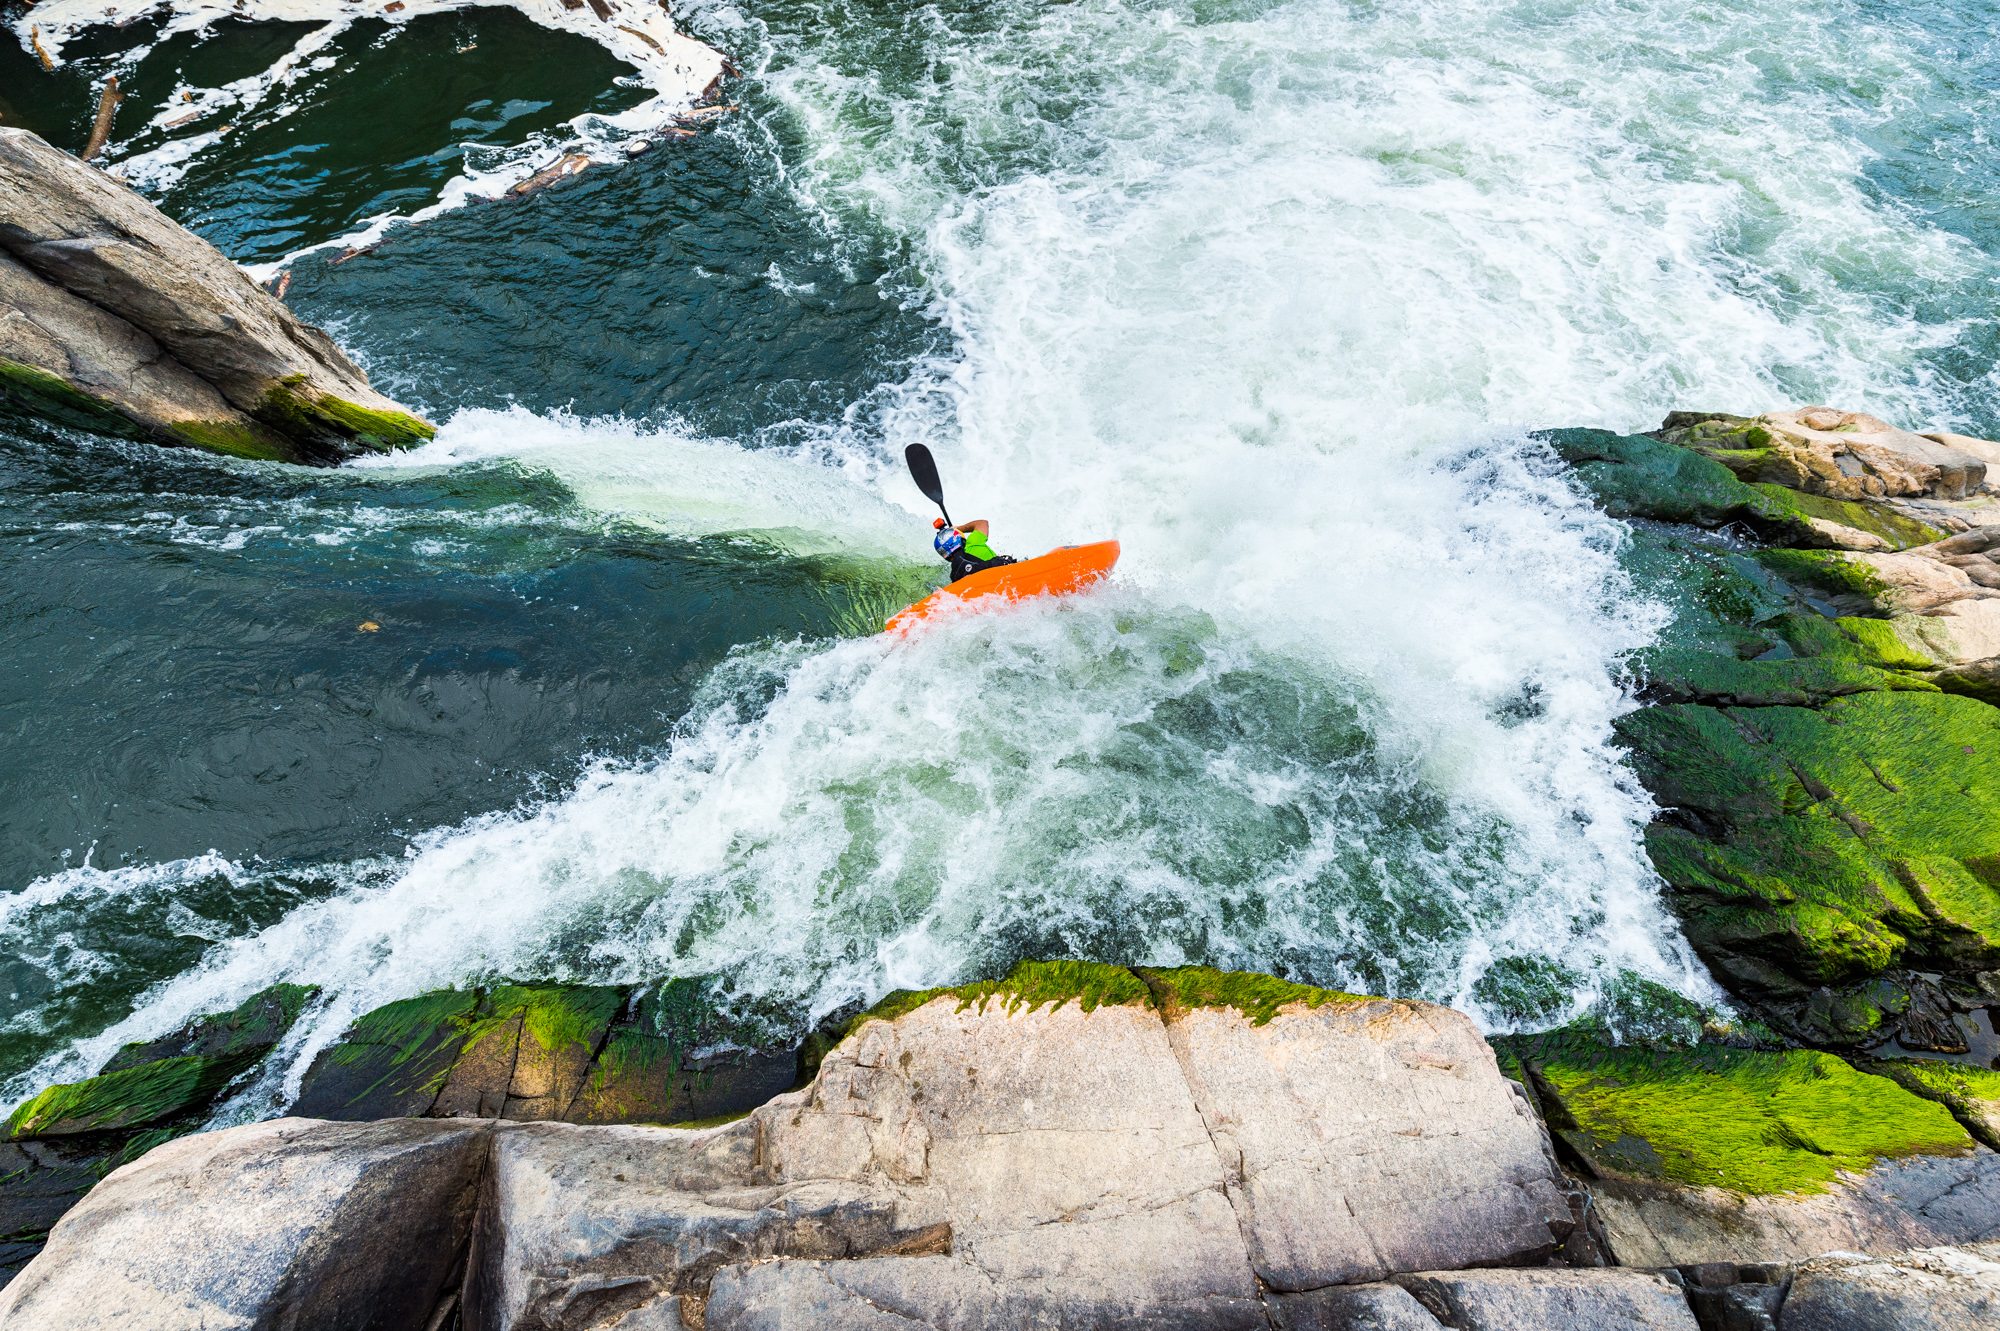 Rafa Ortiz Kayaking near Washington D.C. - Greg Mionske - Advertising and Editorial Photographer in Denver